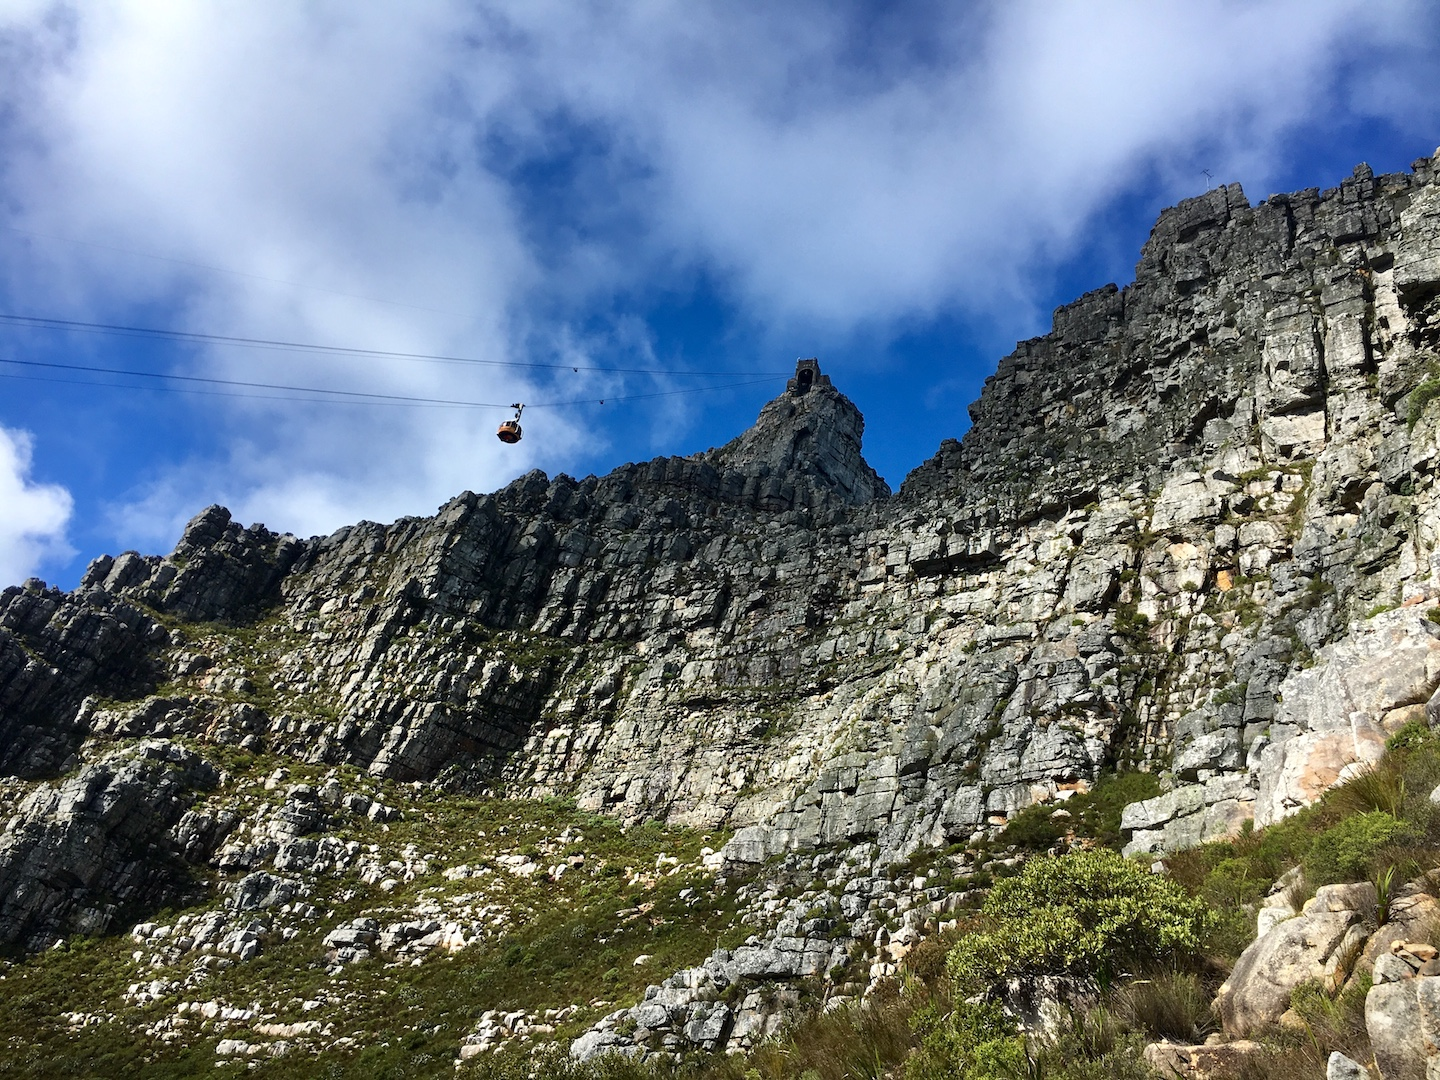 The fastest hike on Table Mountain